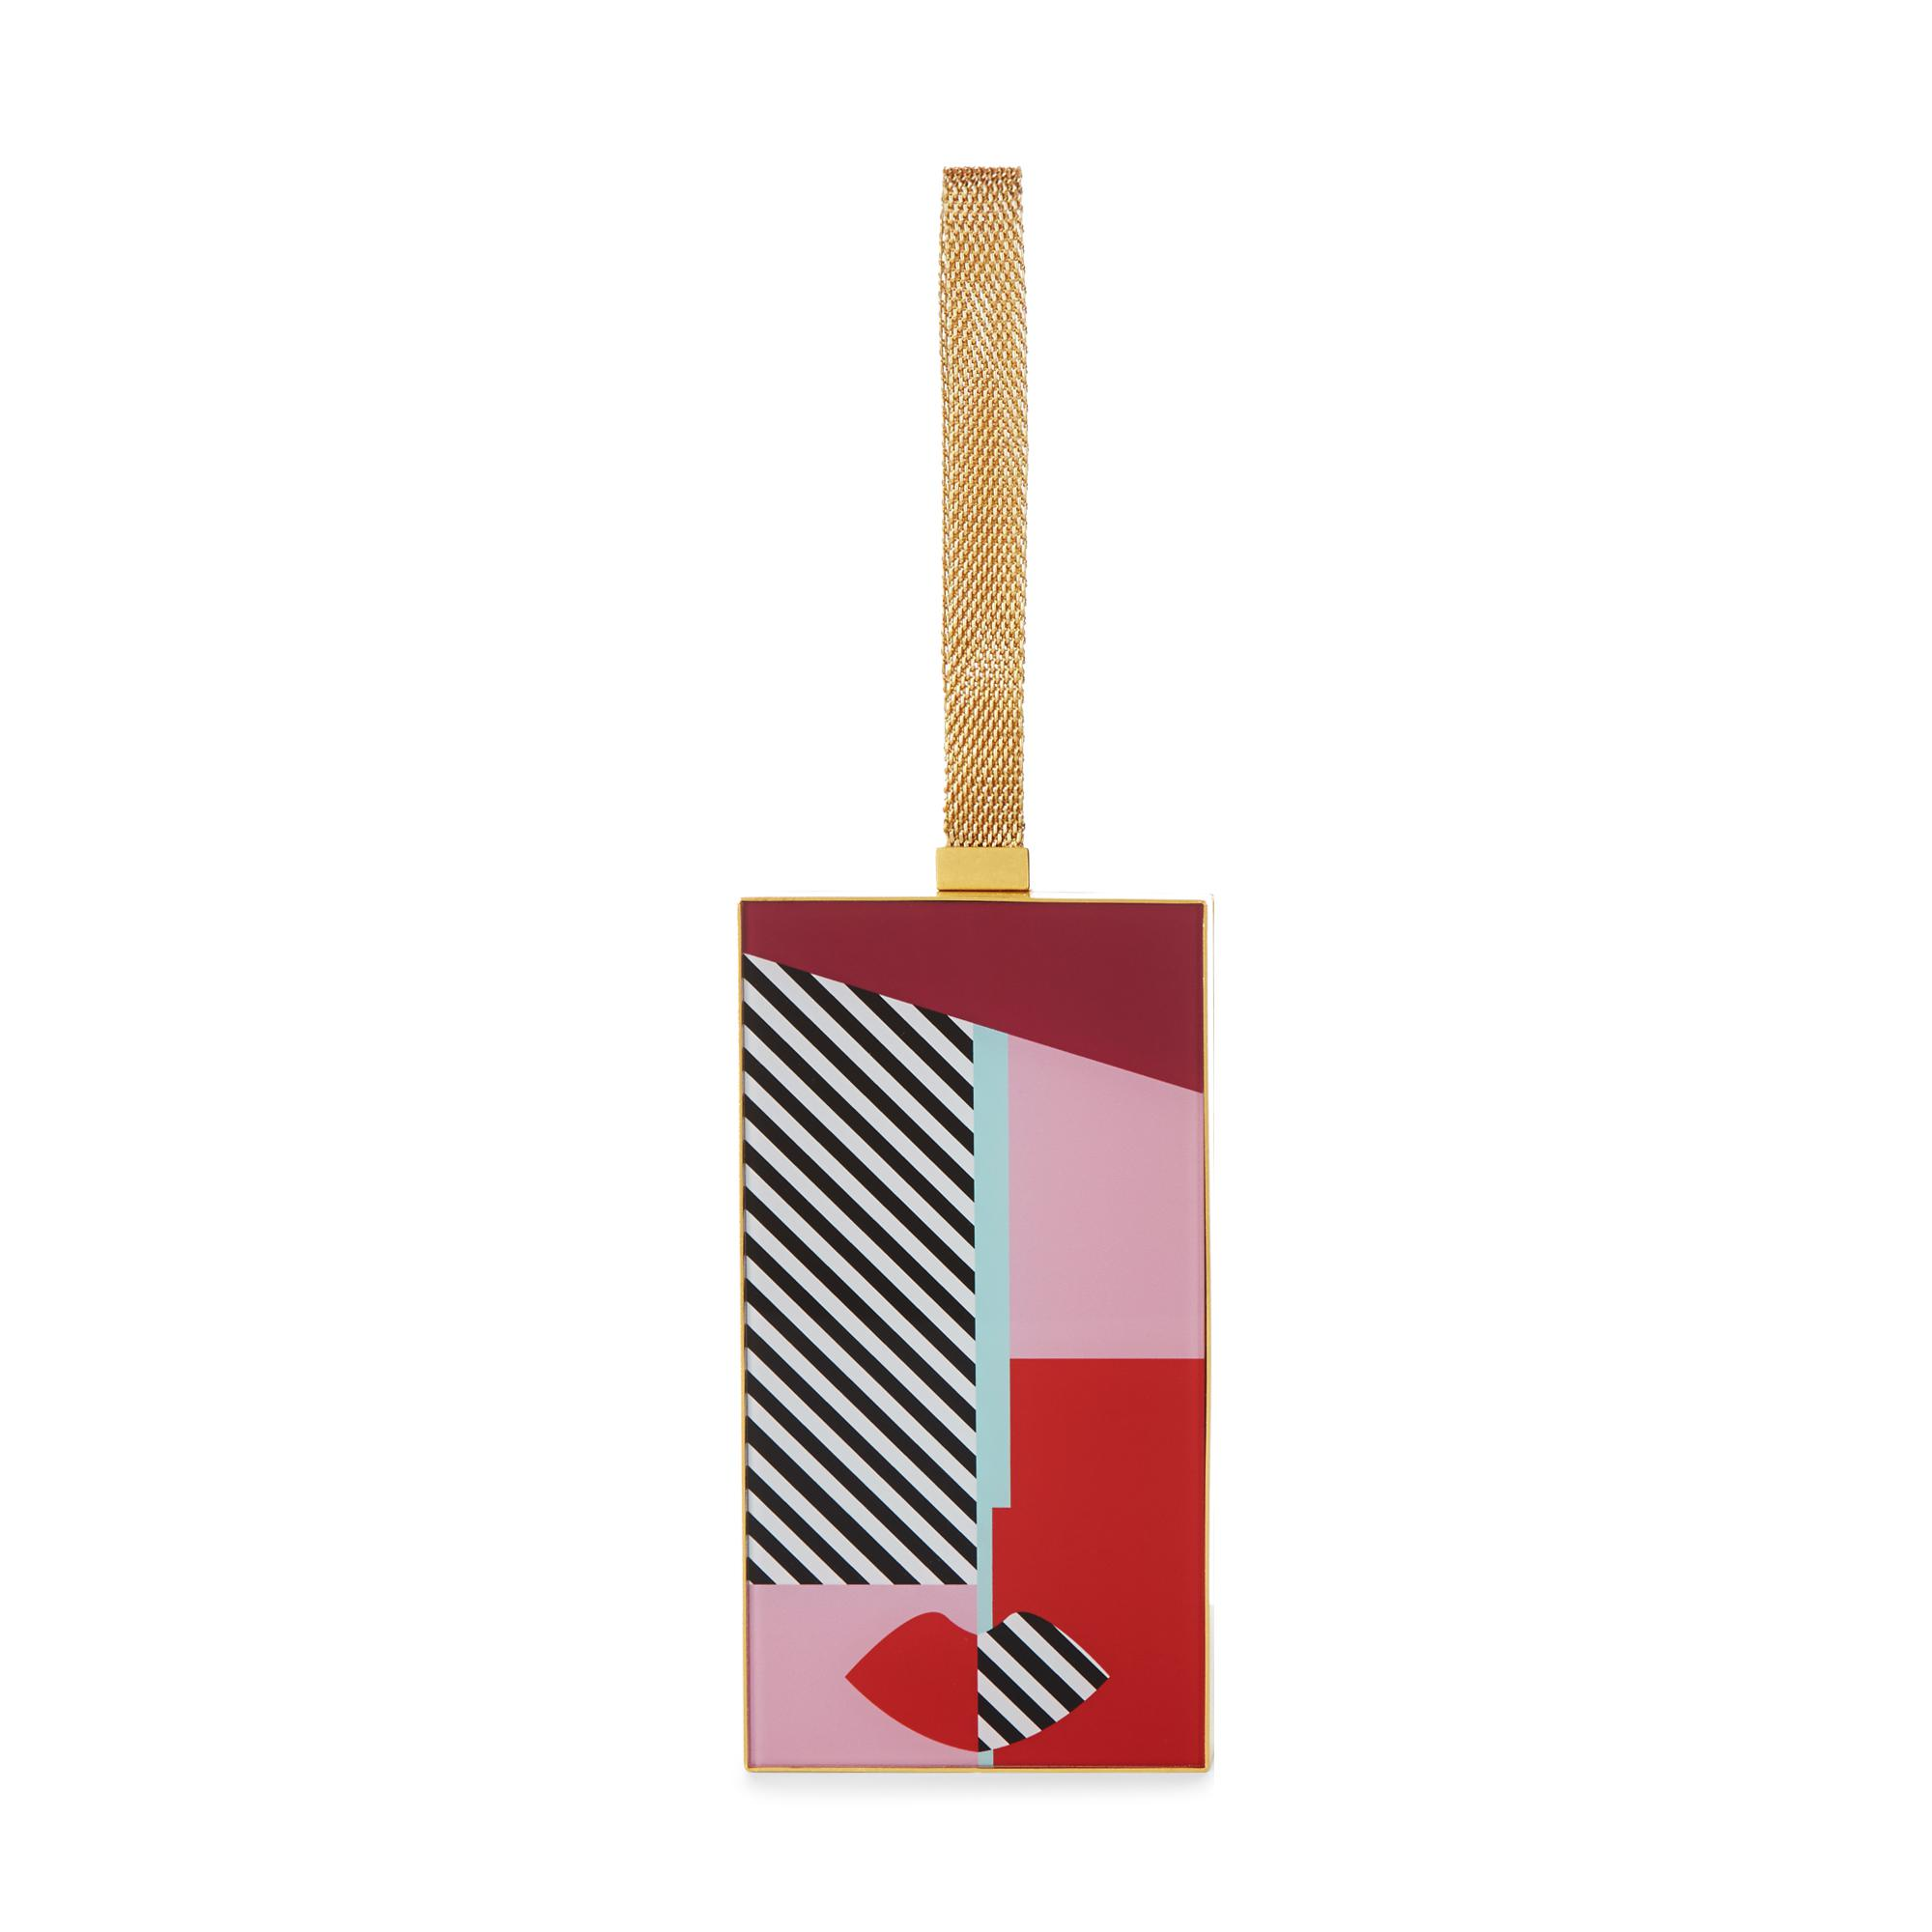 Ettie clutch Lulu Guinness Buy Cheap Purchase Cheap Outlet Store Shop Offer For Sale 2dCzJ2f